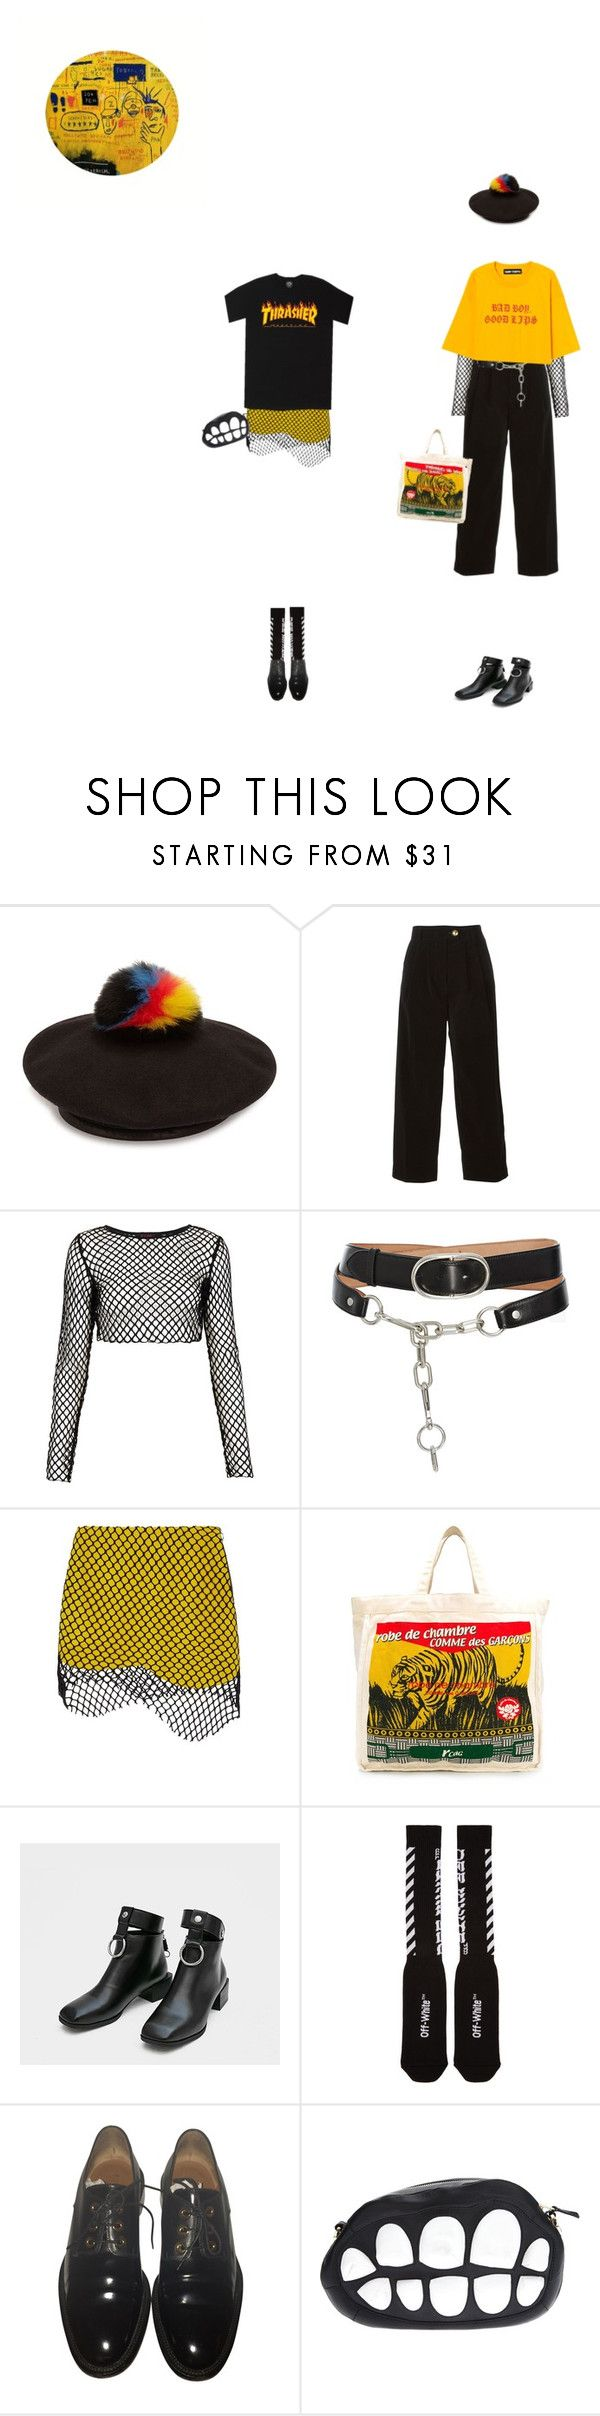 """#366"" by k-ura ❤ liked on Polyvore featuring Eugenia Kim, Forte Forte, Motel, Alexander Wang, Marques'Almeida, Comme des Garçons, Off-White, Givenchy and LARISSA HADJIO"